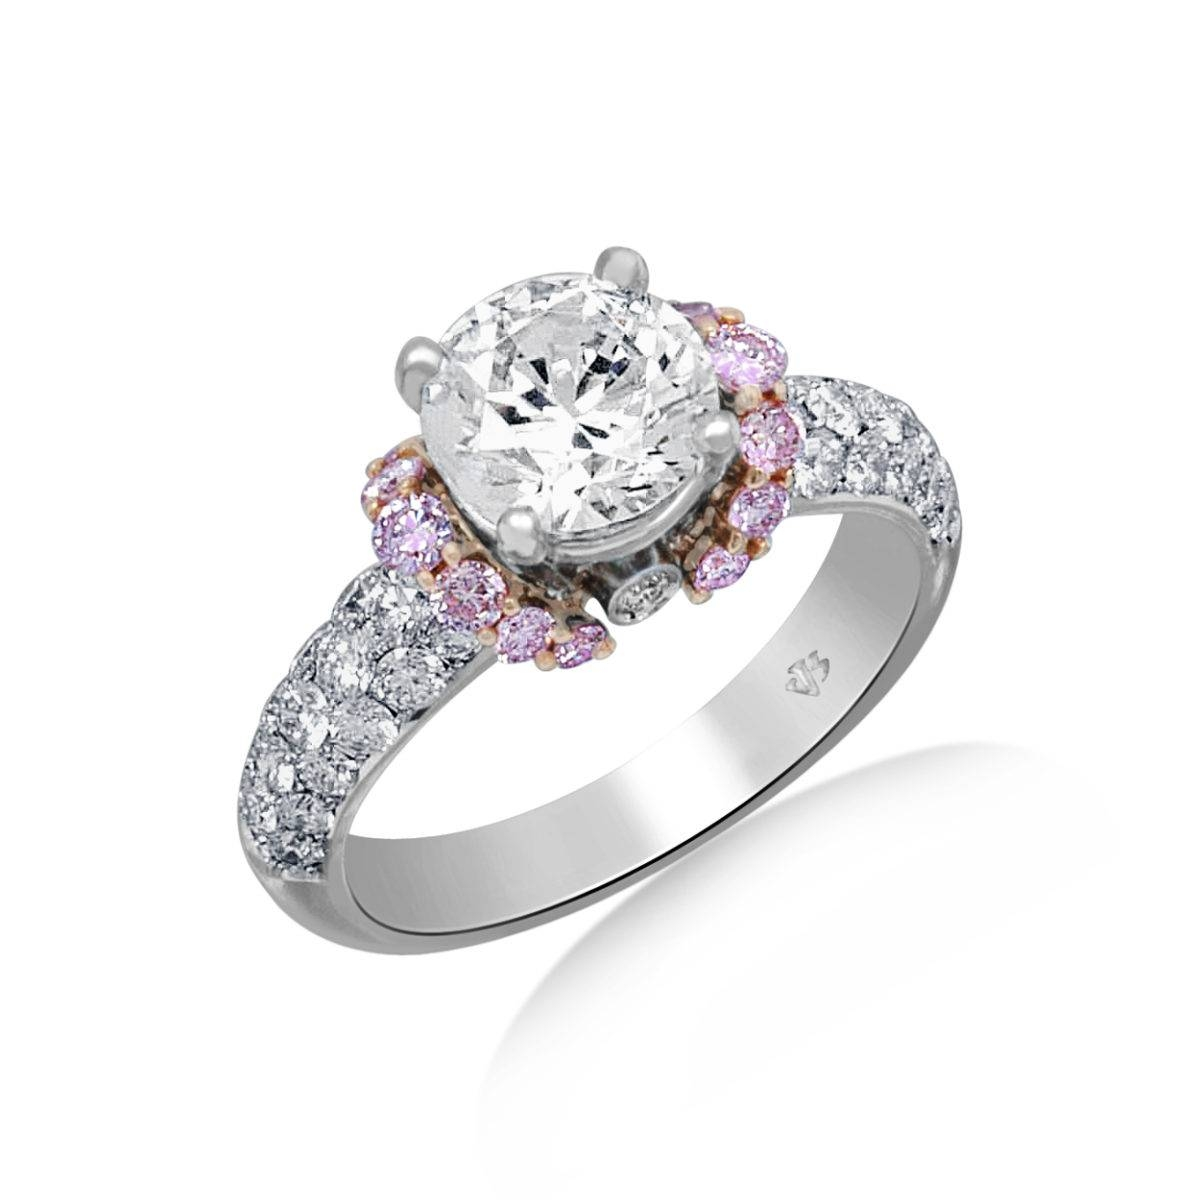 Jack Kelege Diamond Engagement Ring With Pink Diamond Accents For Pink And Diamond Engagement Rings (View 8 of 15)